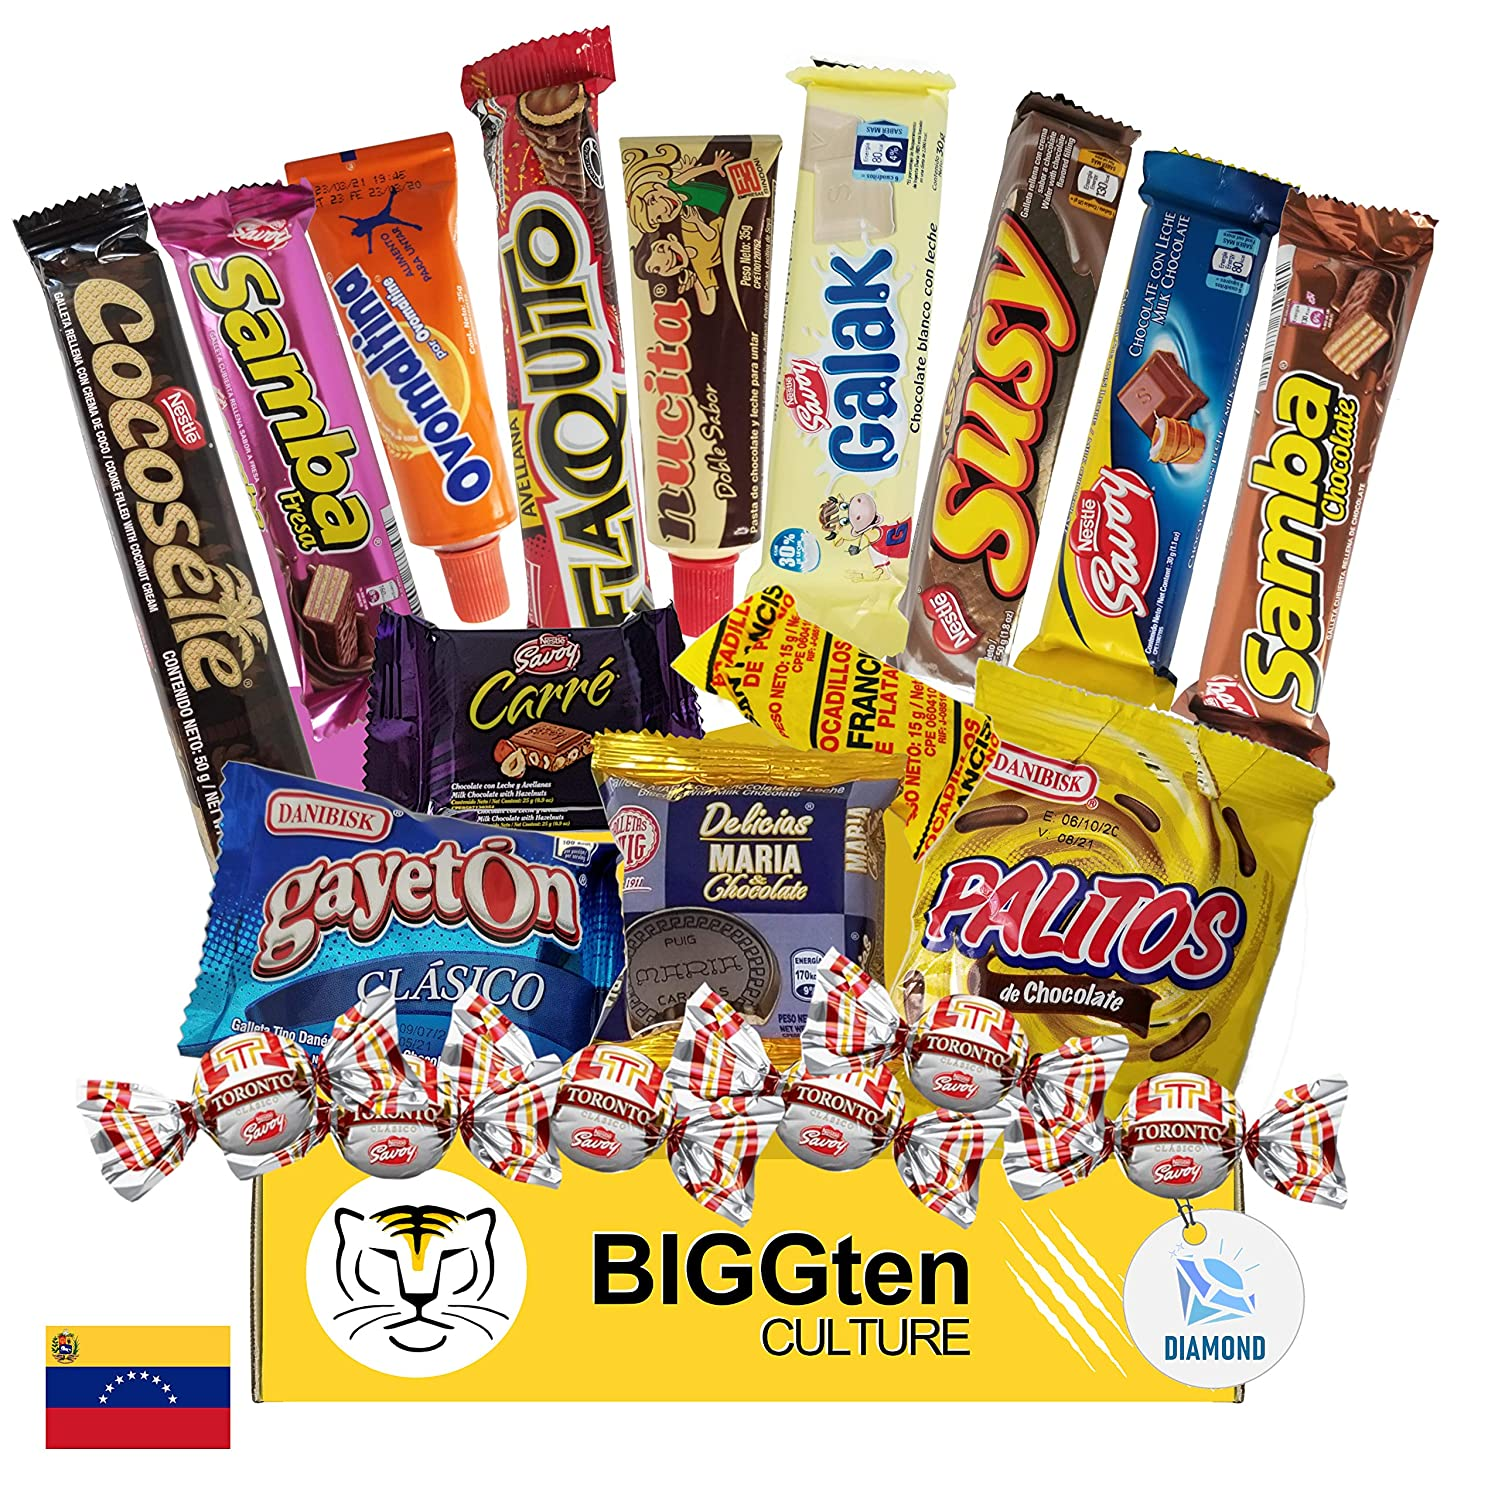 Venezuelan Sweet Snacks Gift Box – International Snack and Candy –Great Assortment of Foreign Treats, Wafer Cookies, Chocolates, Cocosette, Susy, Toronto, Nucita, Galak, Bocadillos, & more. (20 Count)